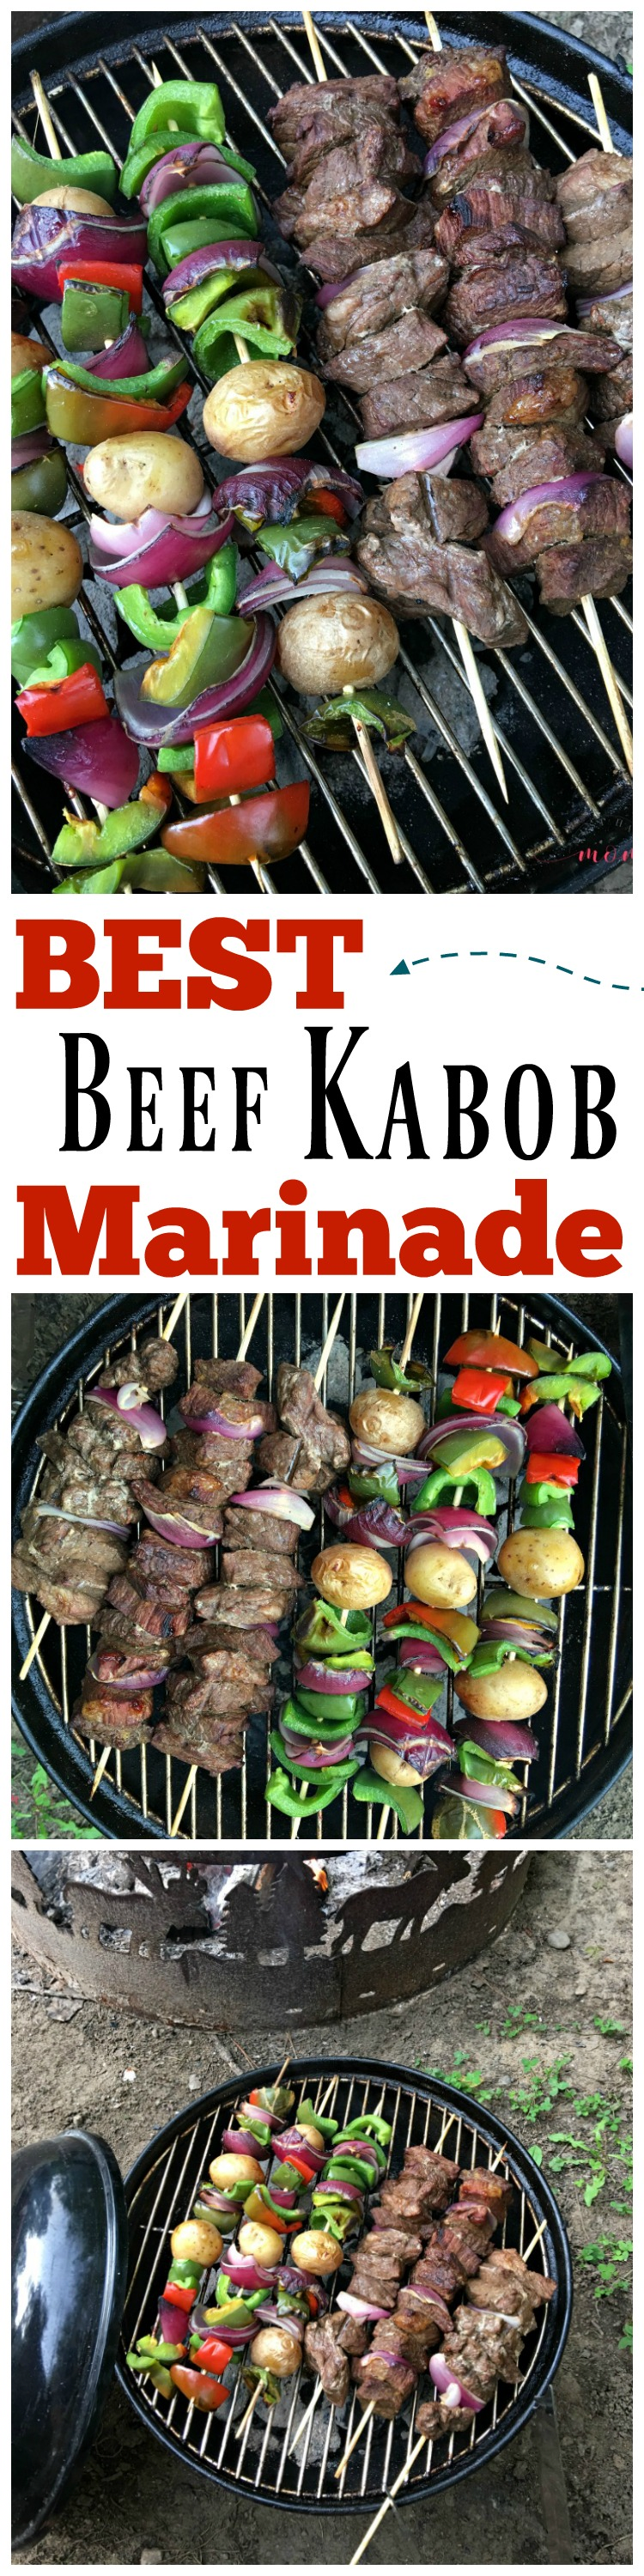 BEST beef kabob marinade recipe! These beef kabobs on the grill marinade recipe is our favorite camping recipe.